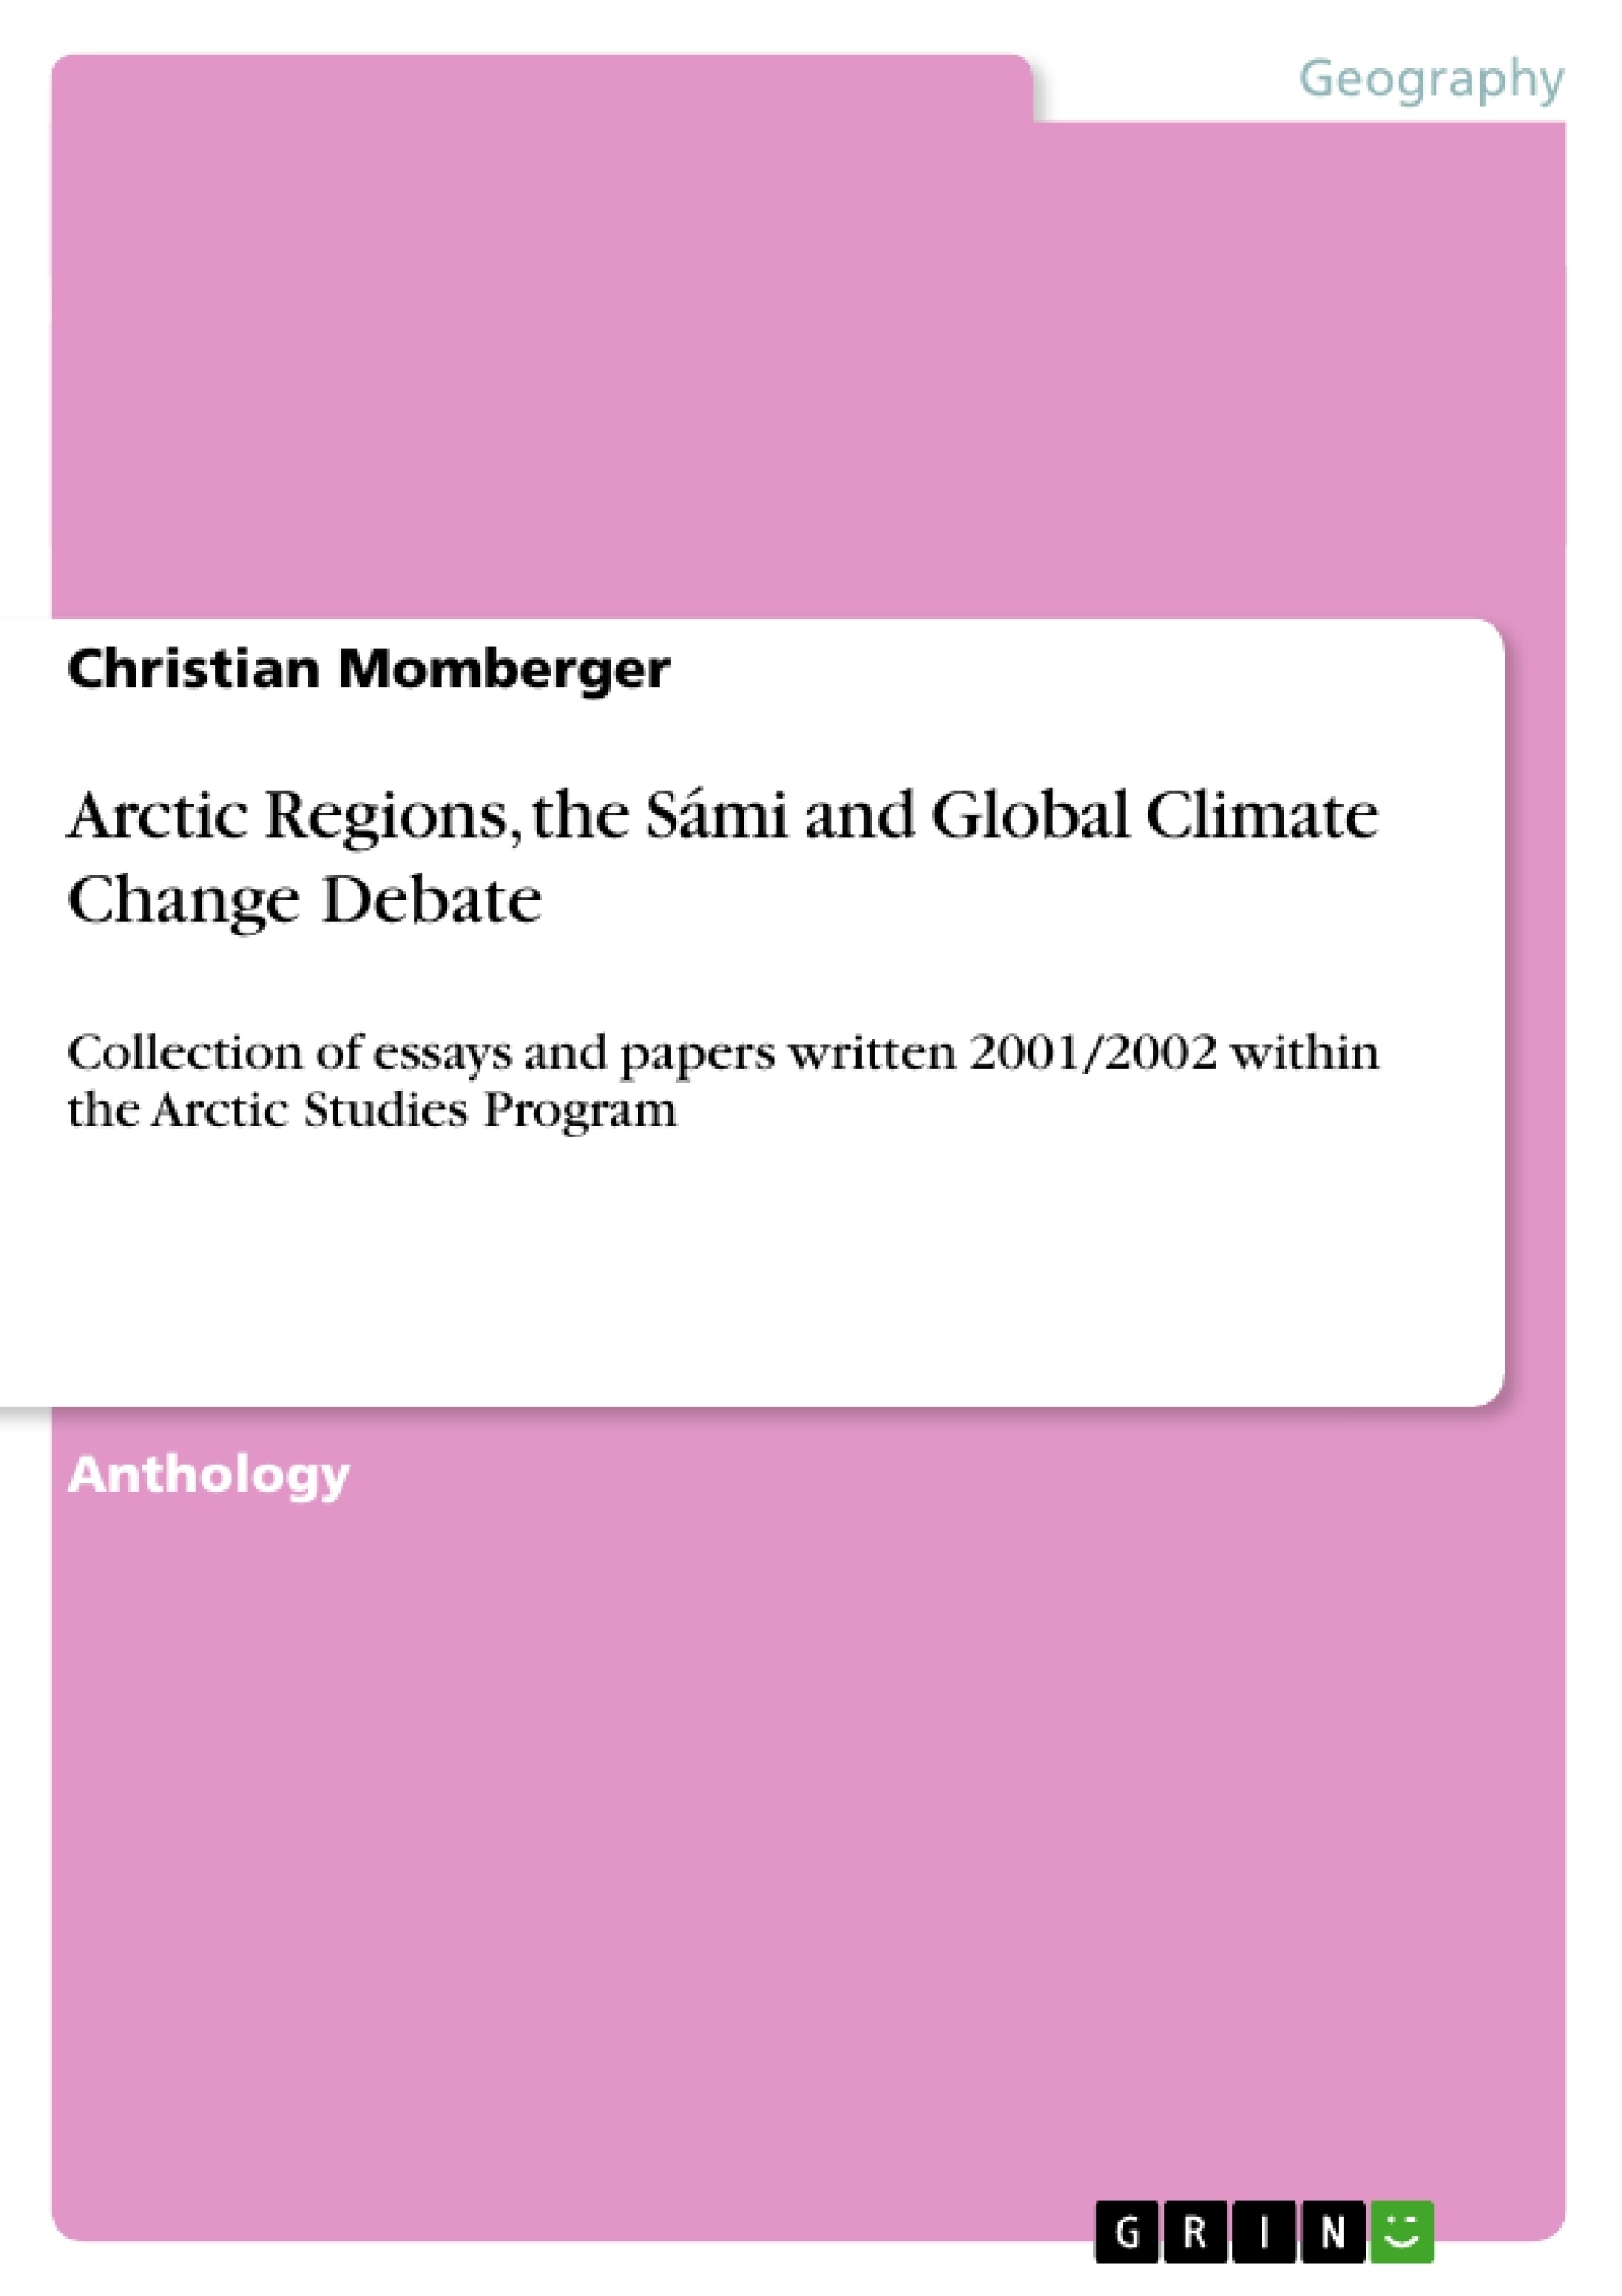 Title: Arctic Regions, the Sámi and Global Climate Change Debate